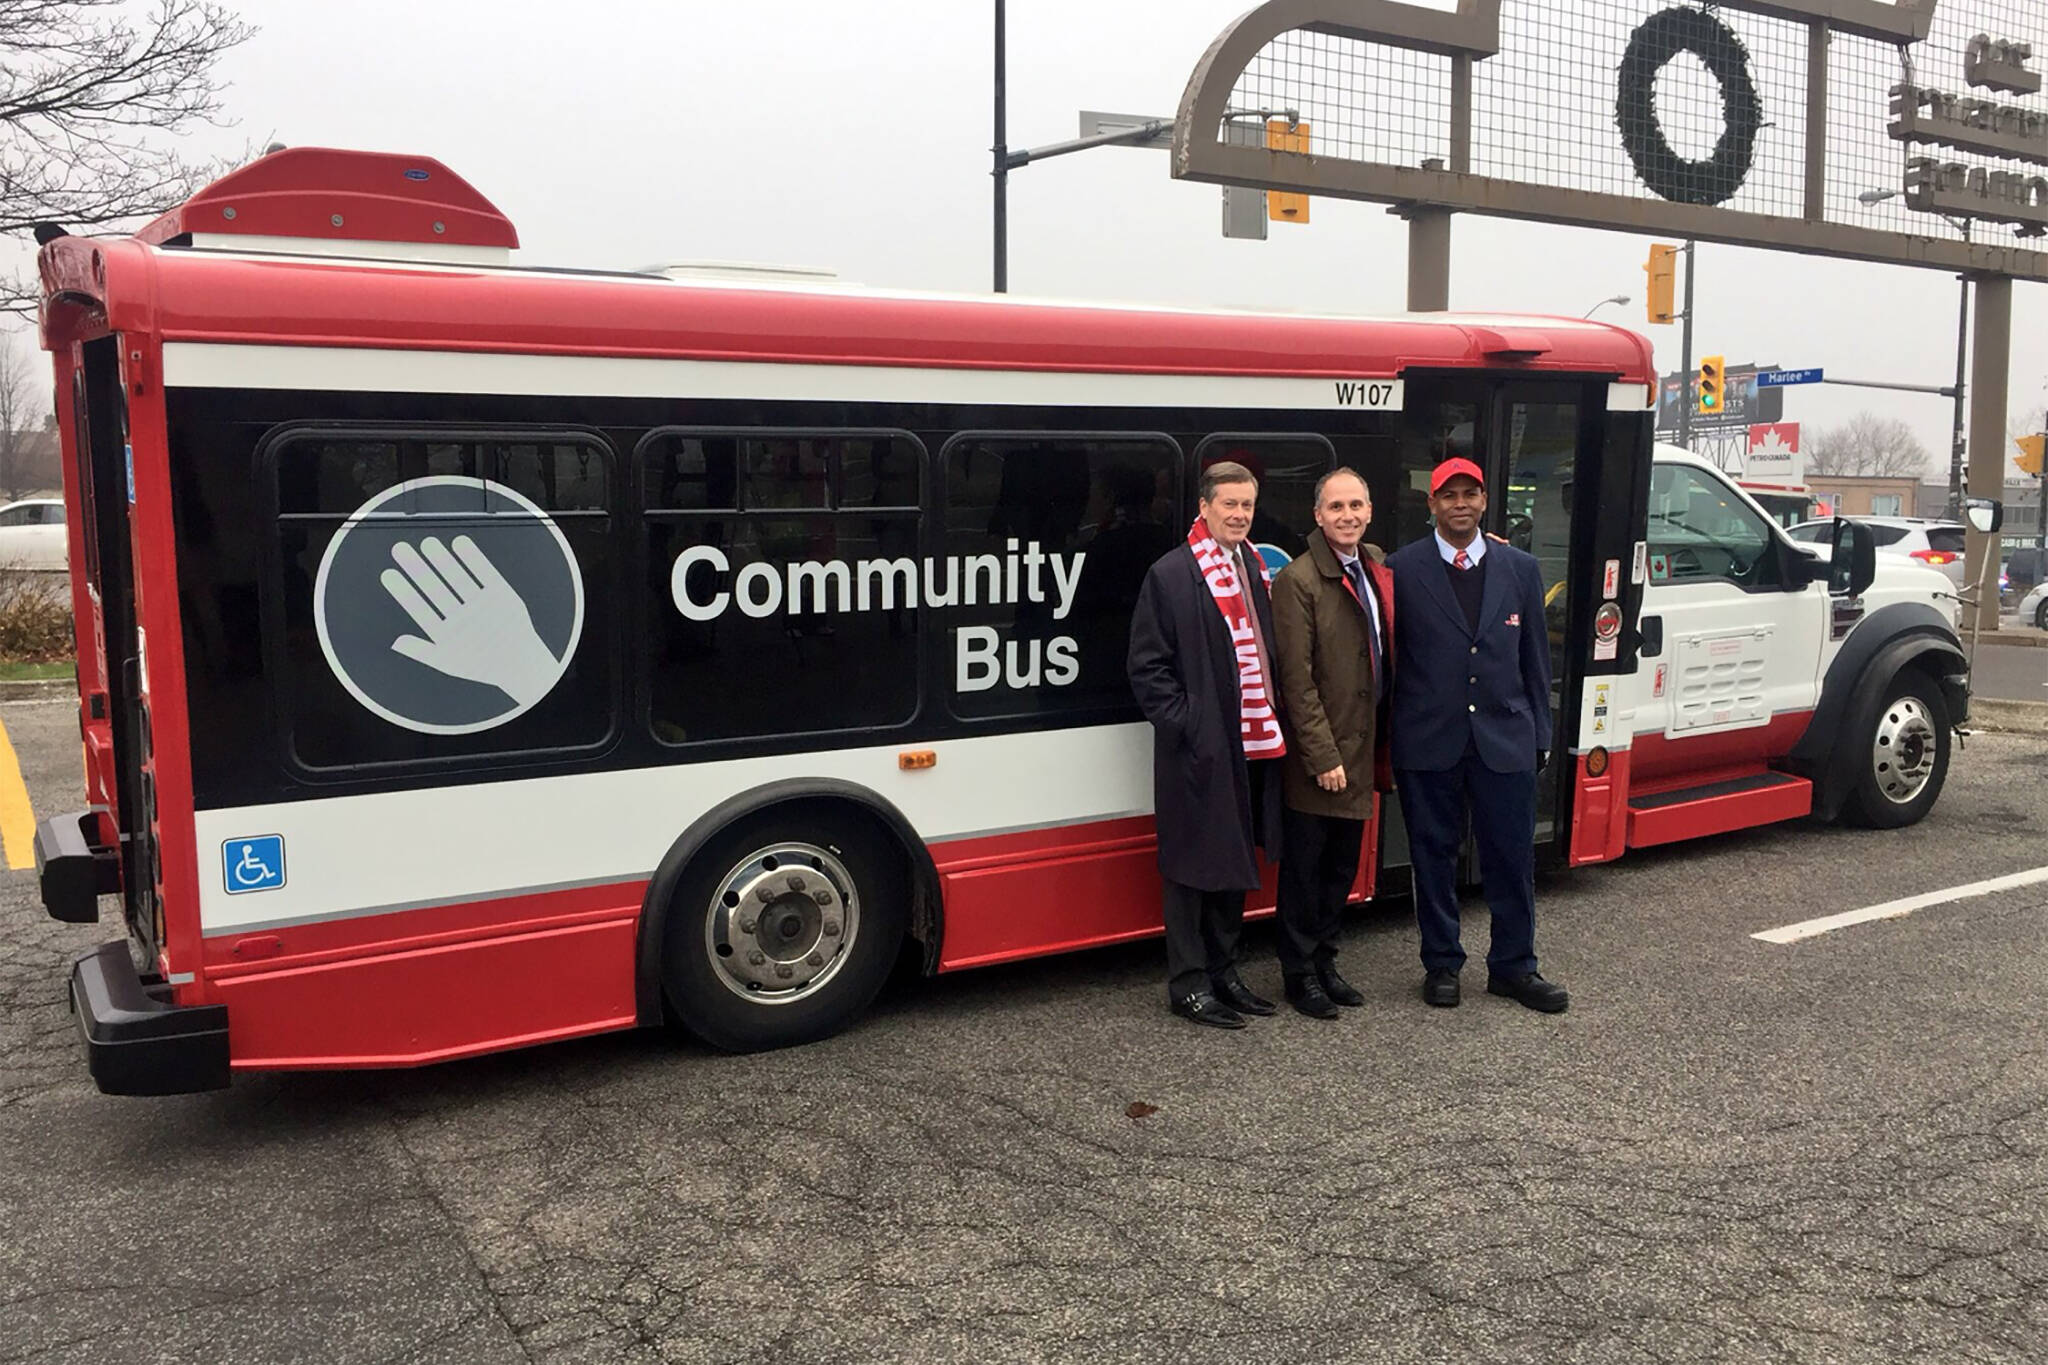 ttc community bus